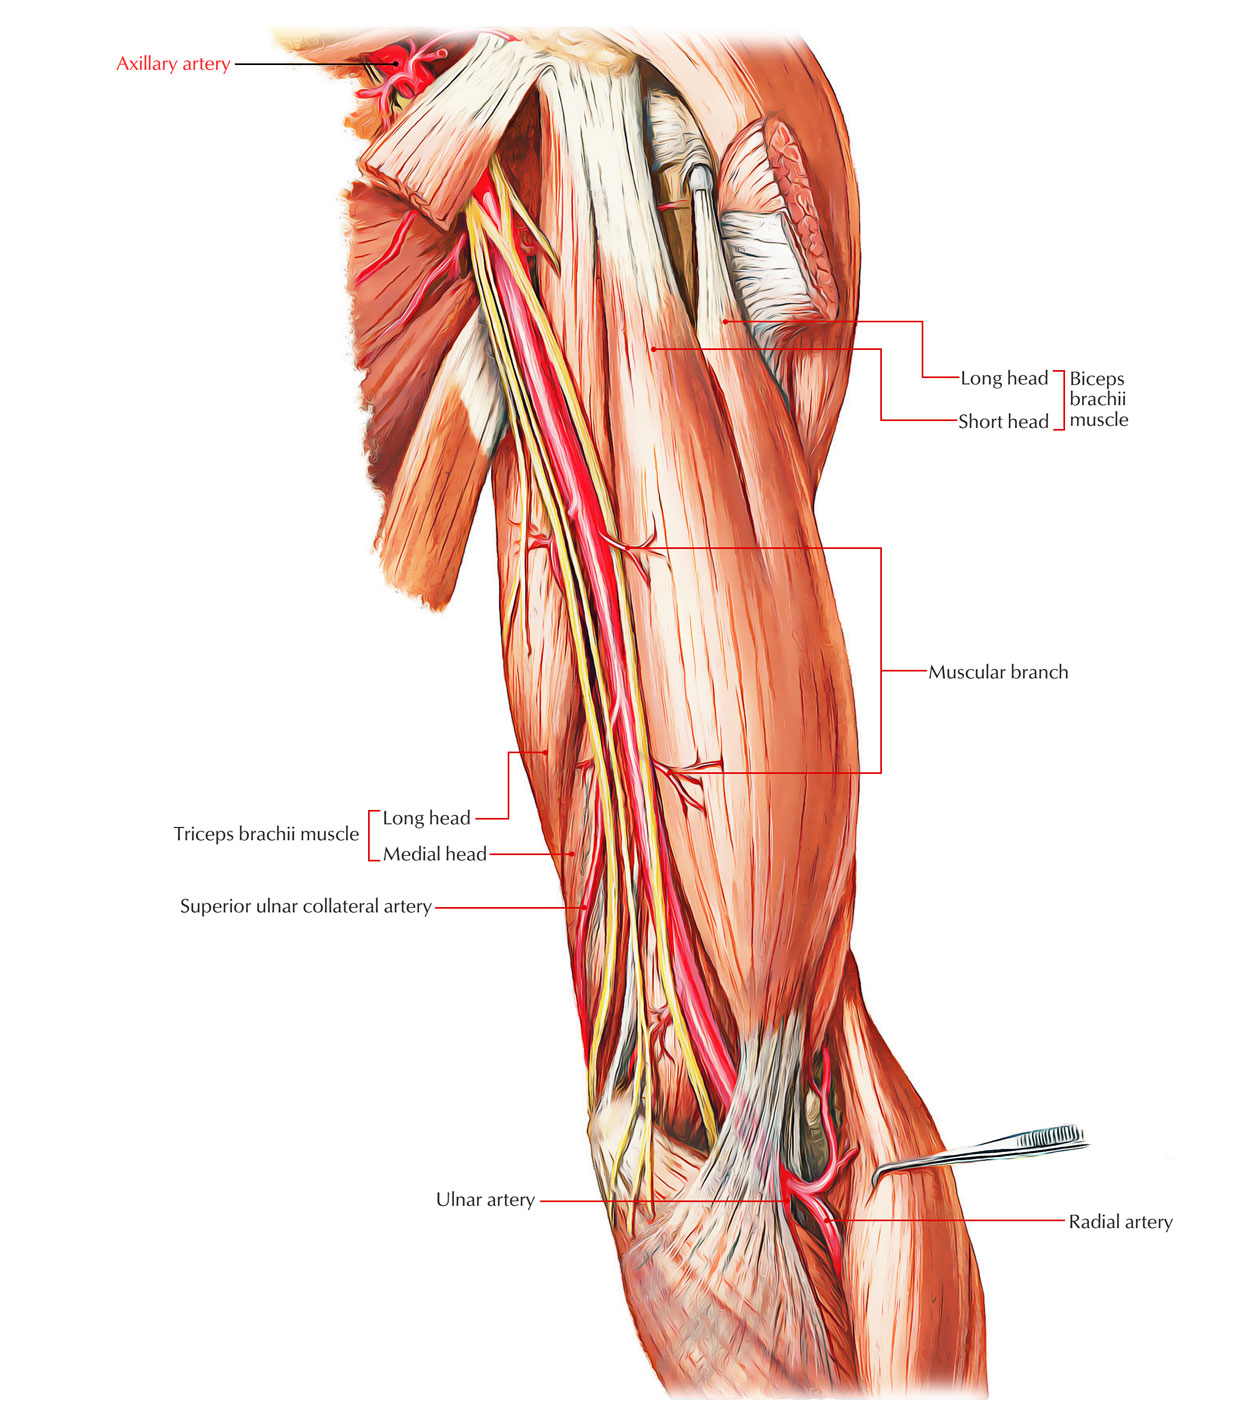 Easy Notes On Arteries Of The Upper Limblearn In Just 4 Minutes